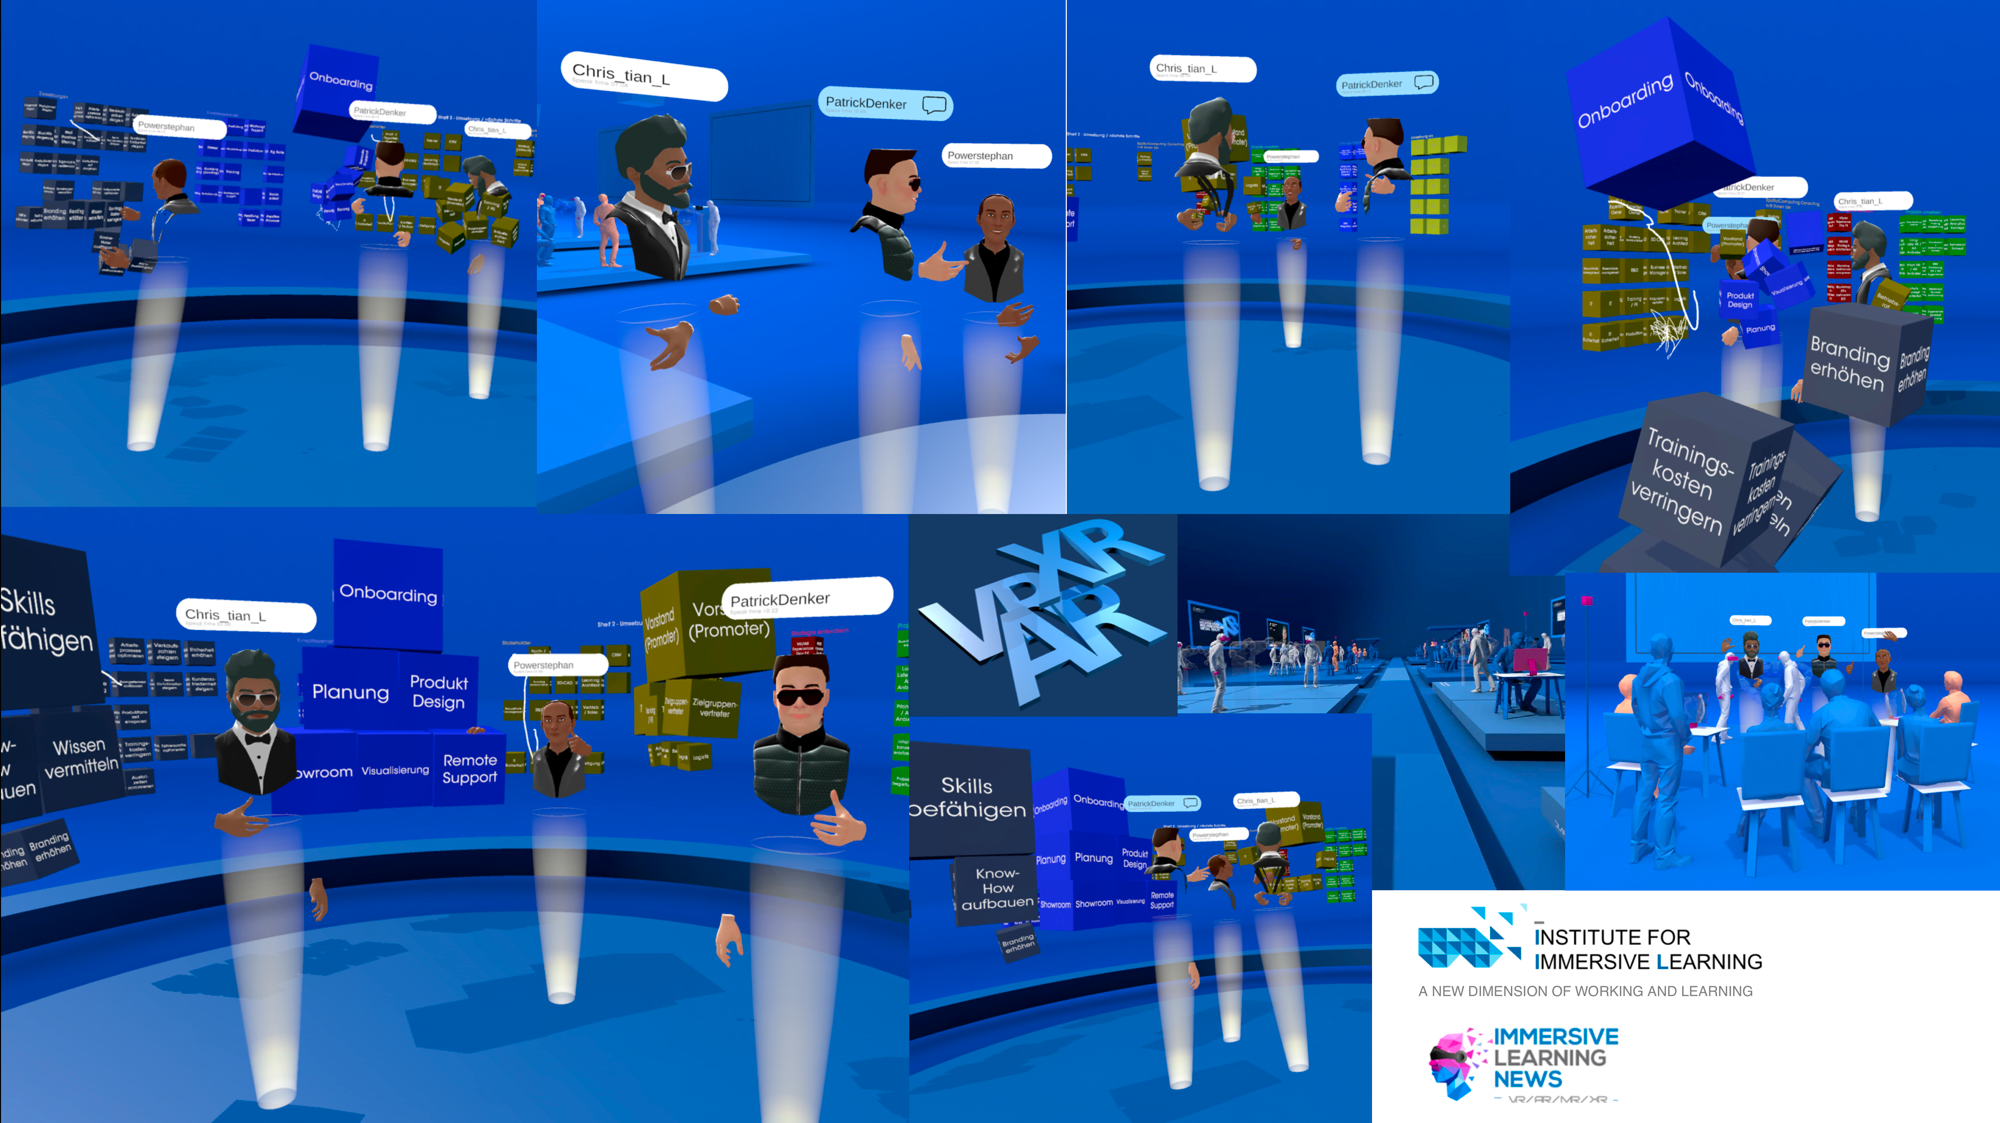 https://www.immersivelearning.institute/wp-content/uploads/2021/03/vr_trainer_2021_3.png